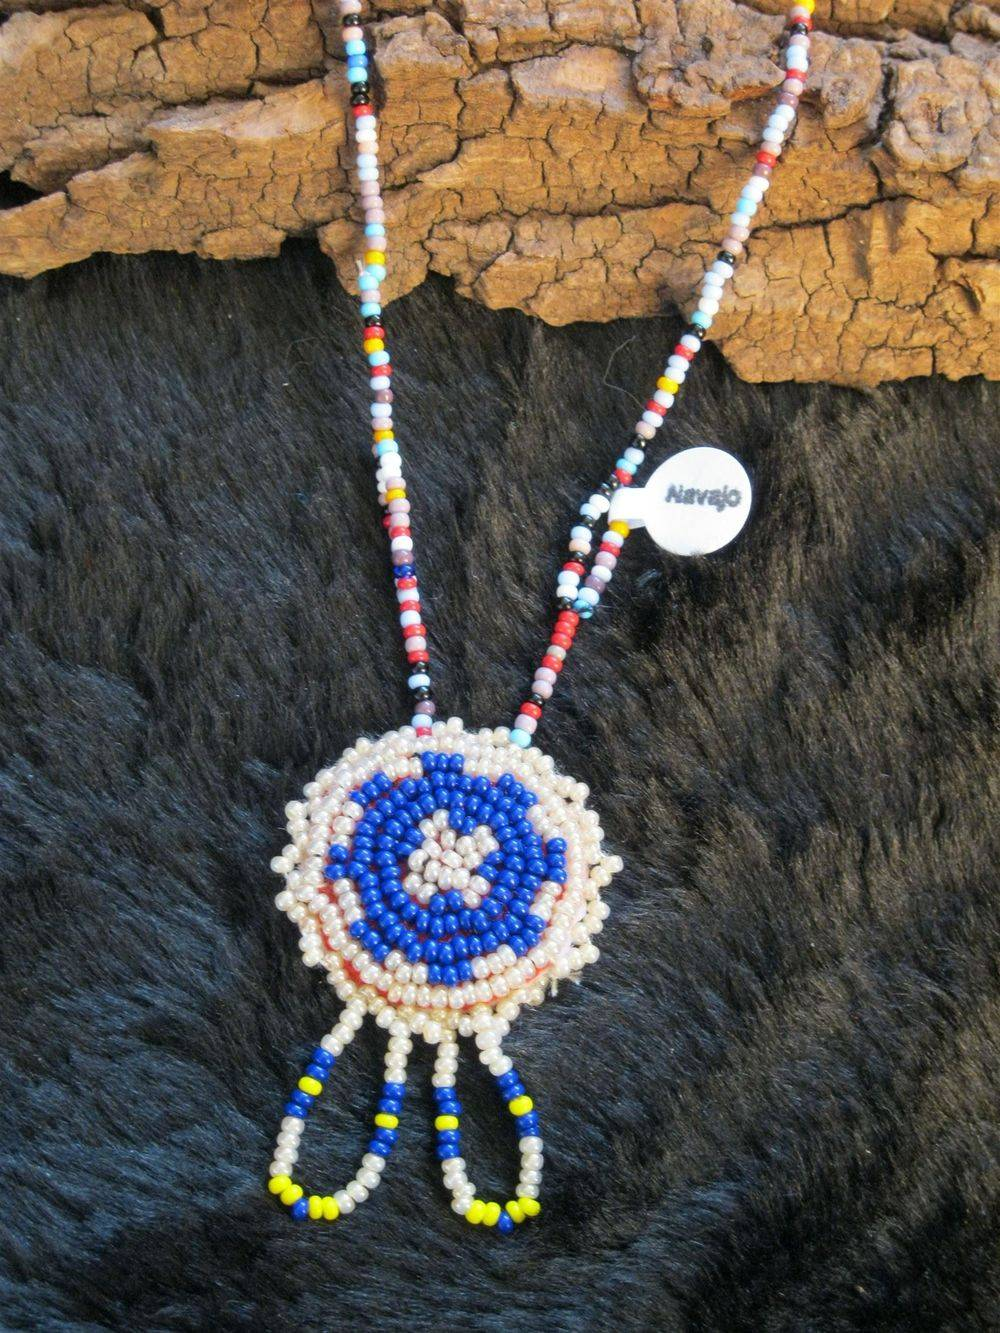 Ghost Beads, Turtle Beads, Rosette Beads, necklaces, Navajo, Genuine Native American, bead work, blue, white yellow, green, blue, red, black, brown